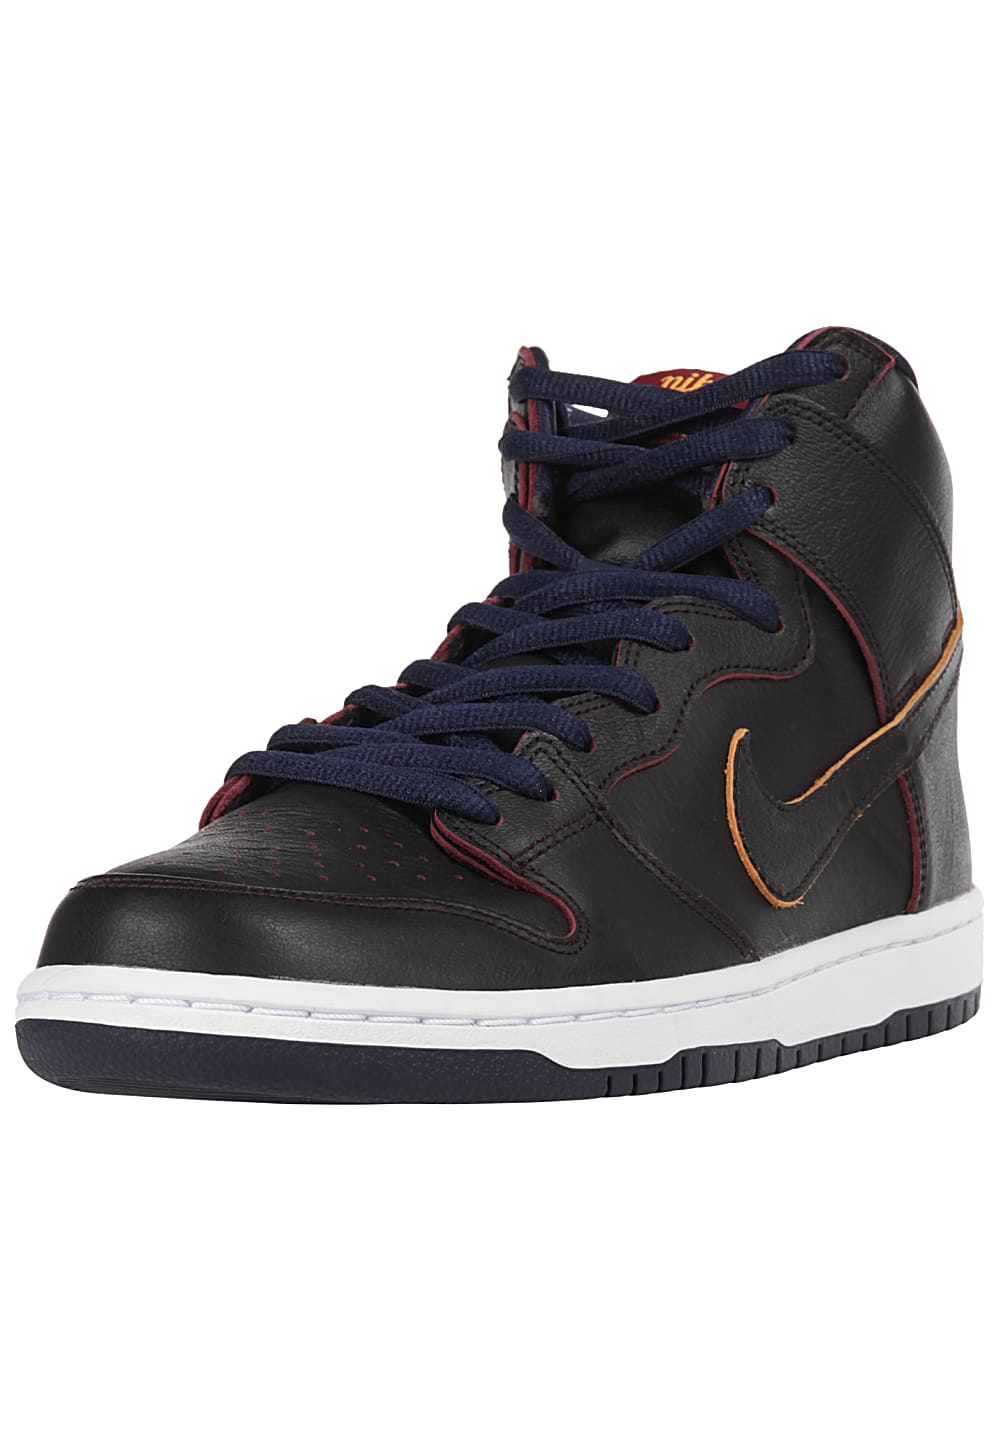 brand new ca877 104aa NIKE SB Dunk High Pro Nba - Sneakers for Men - Black